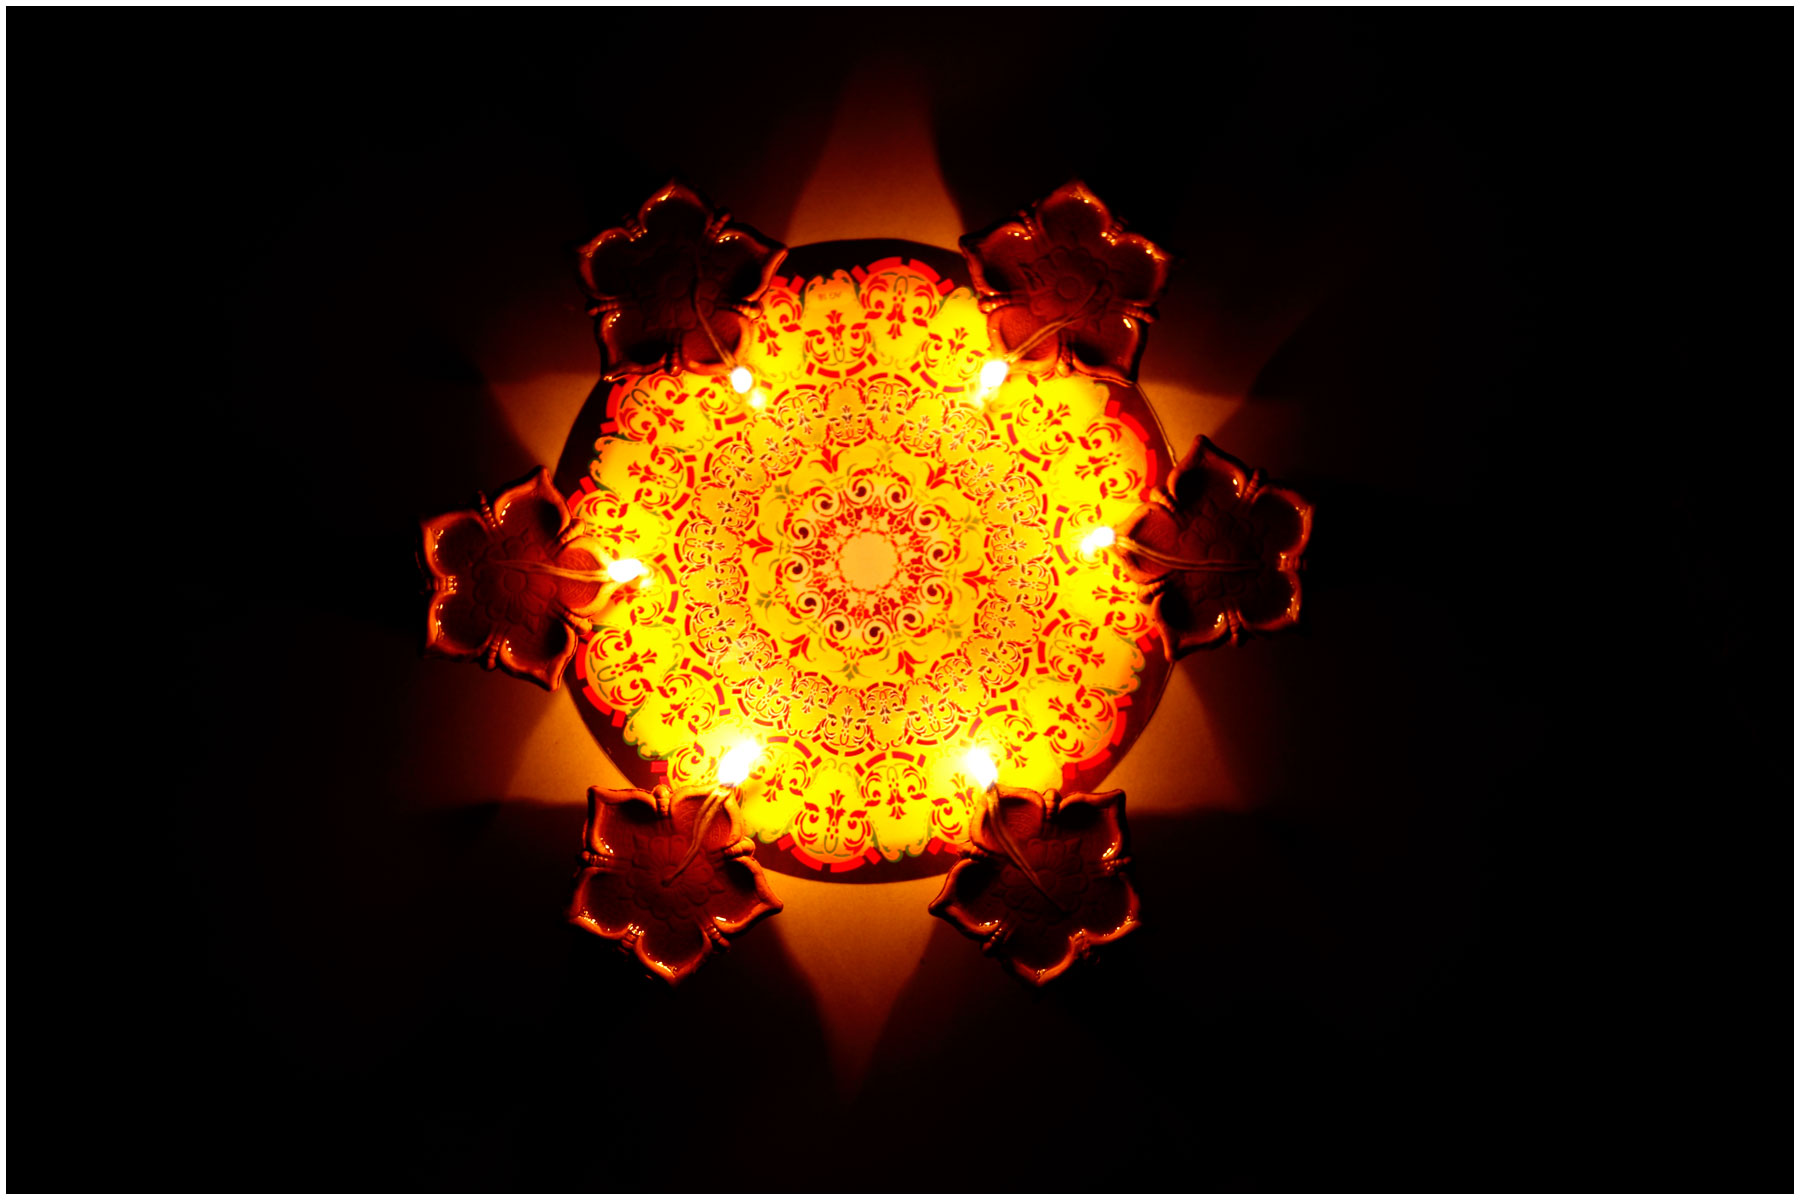 45 beautiful hd diwali images and wallpaper to feel the enlightenment